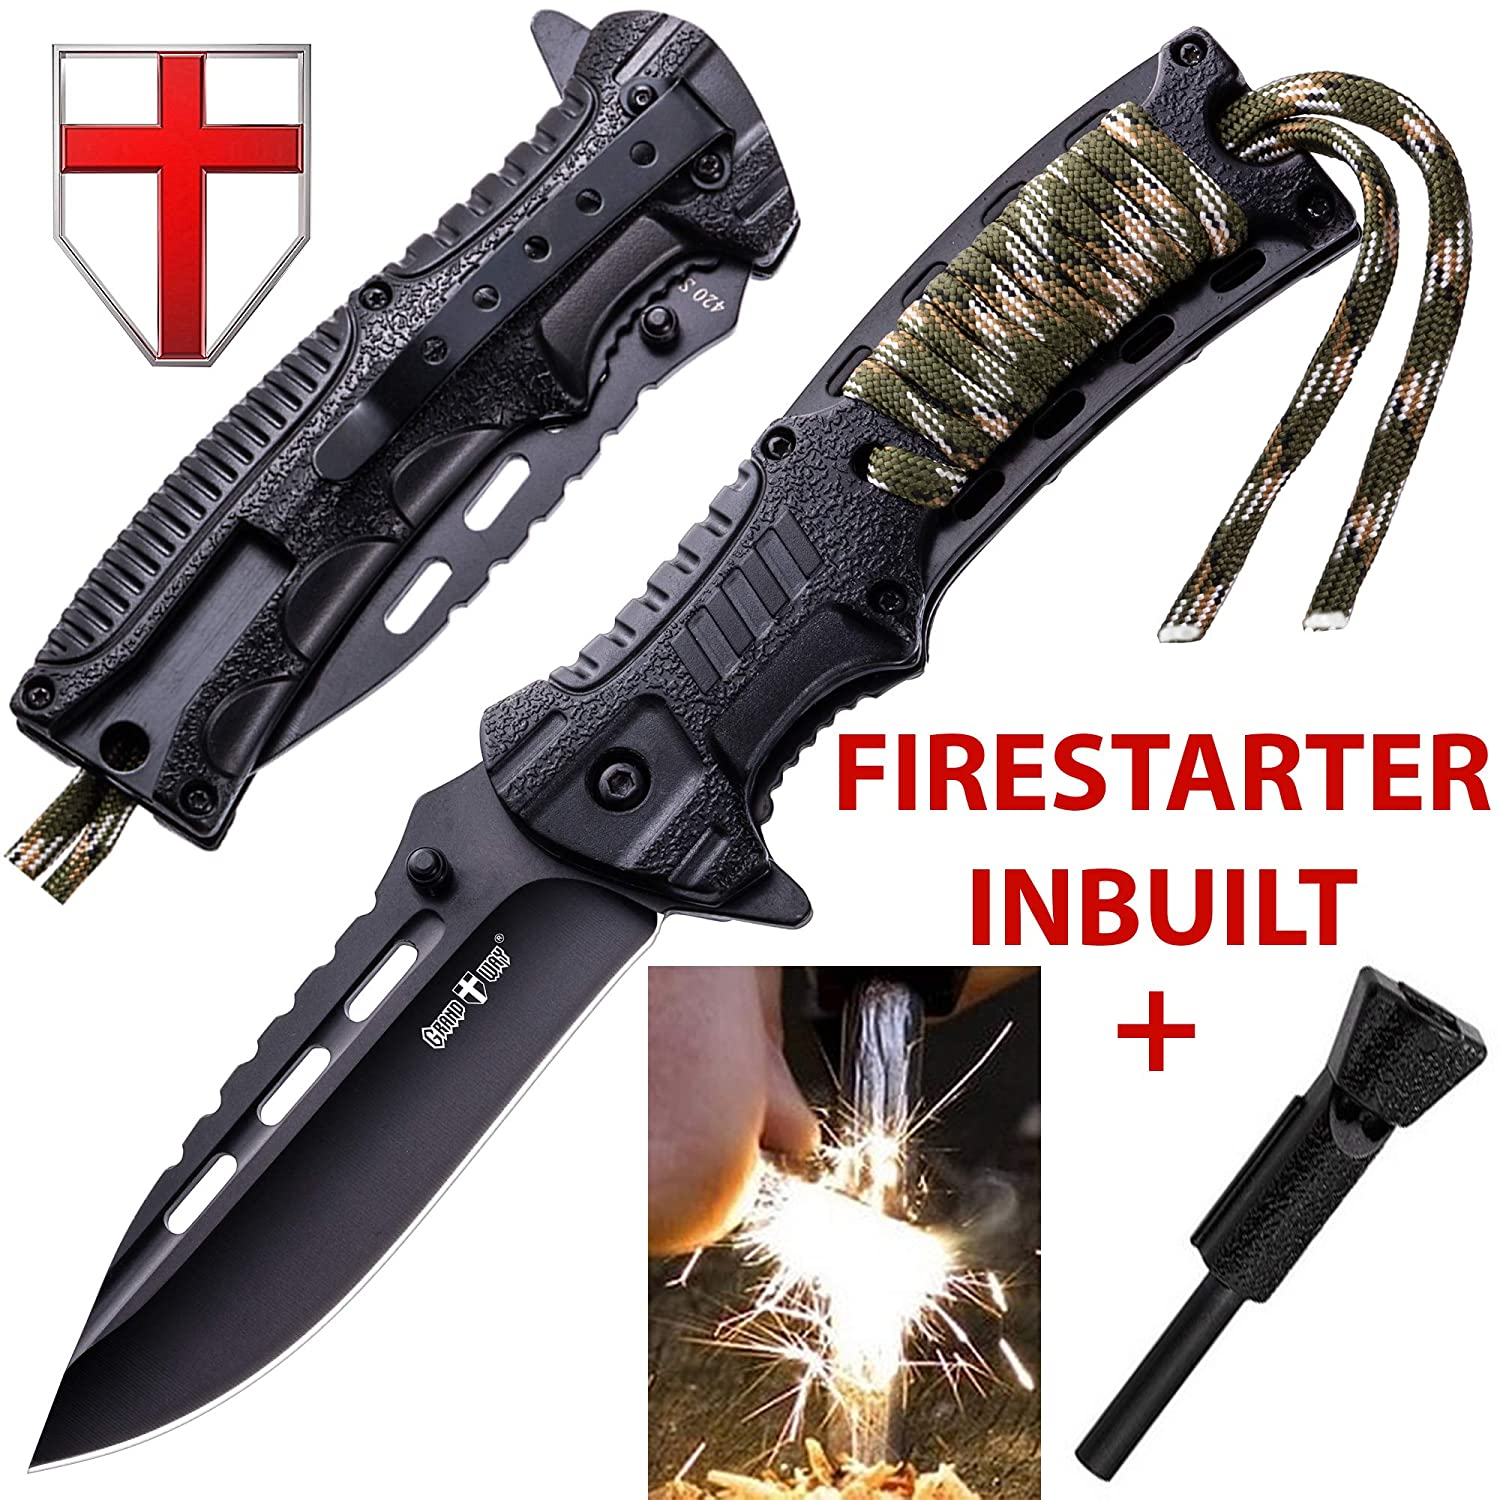 Pocket Knife - Tactical Folding Knife - Spring Assisted Knife with Fire Starter & Paracord Handle - Best EDC Survival Hiking Camping Knife for Army ...